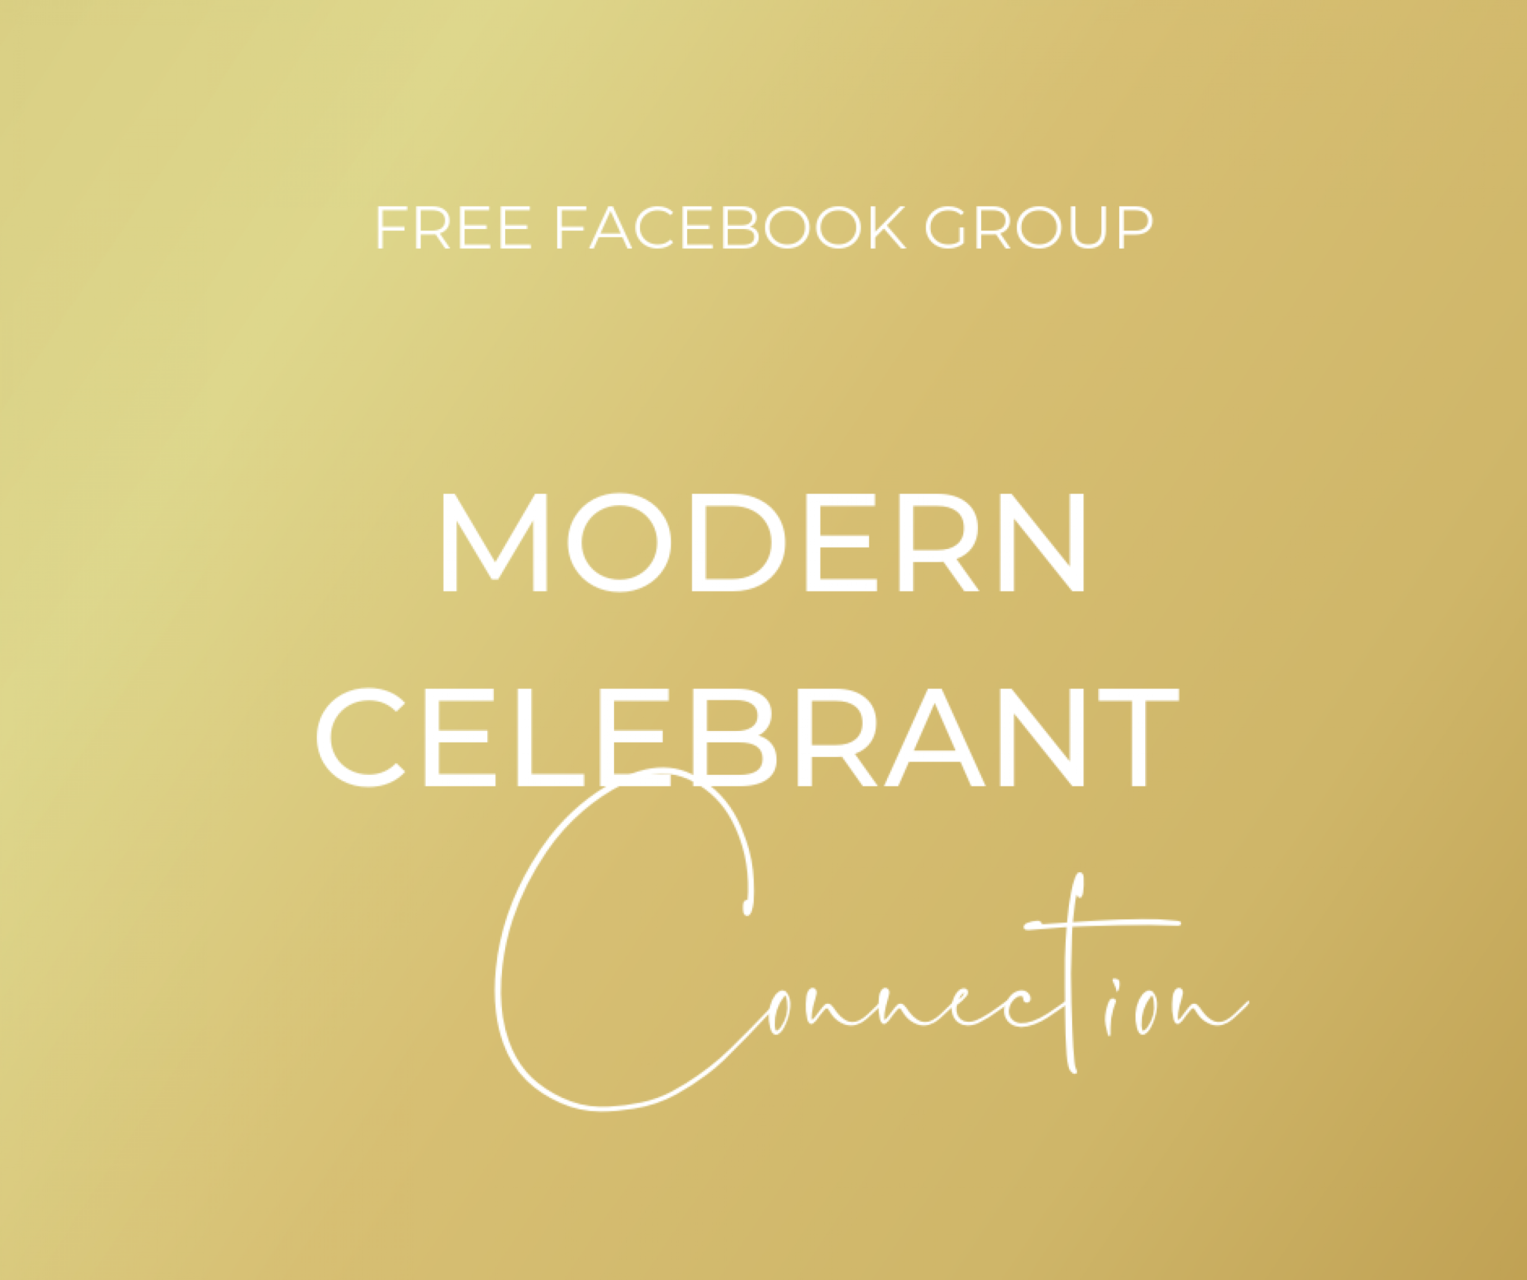 Join your FREE Facebook Celebrant Community